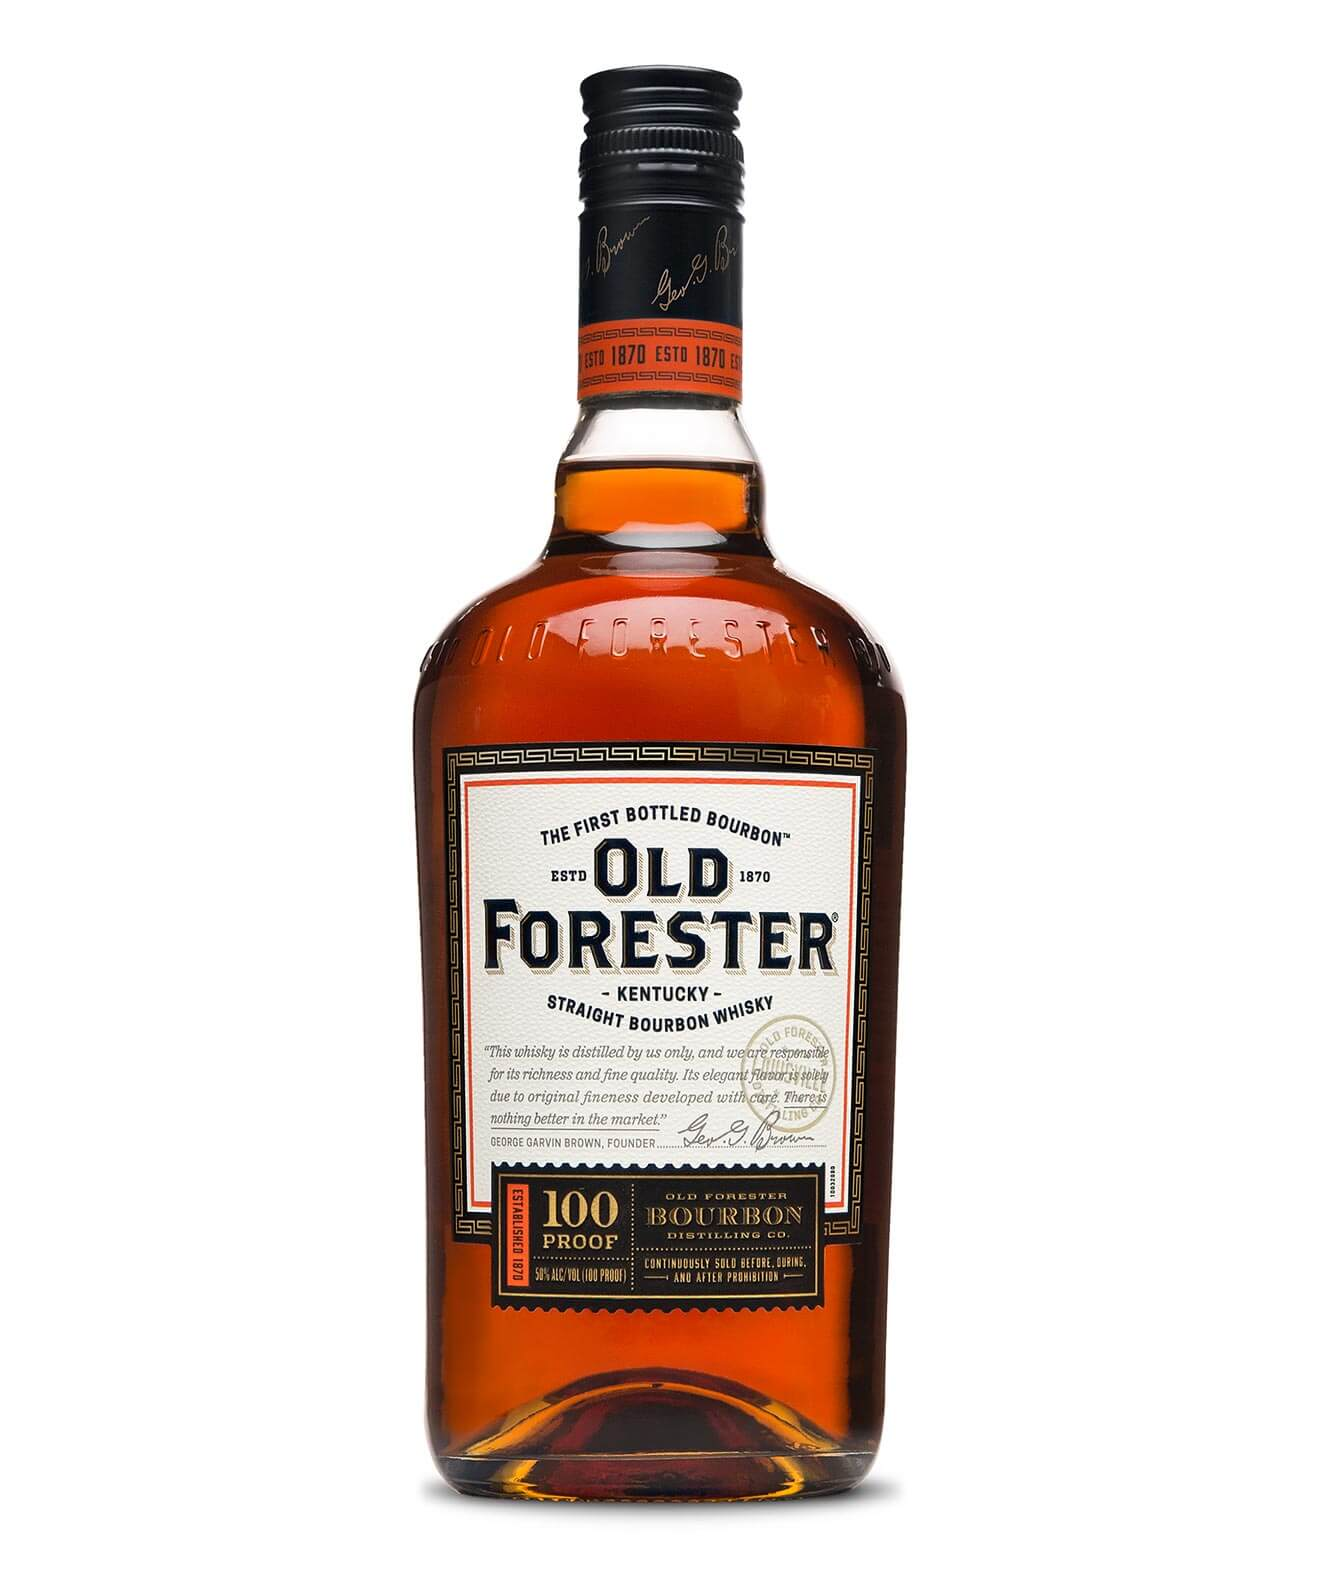 Old Forester 100 bottle on white